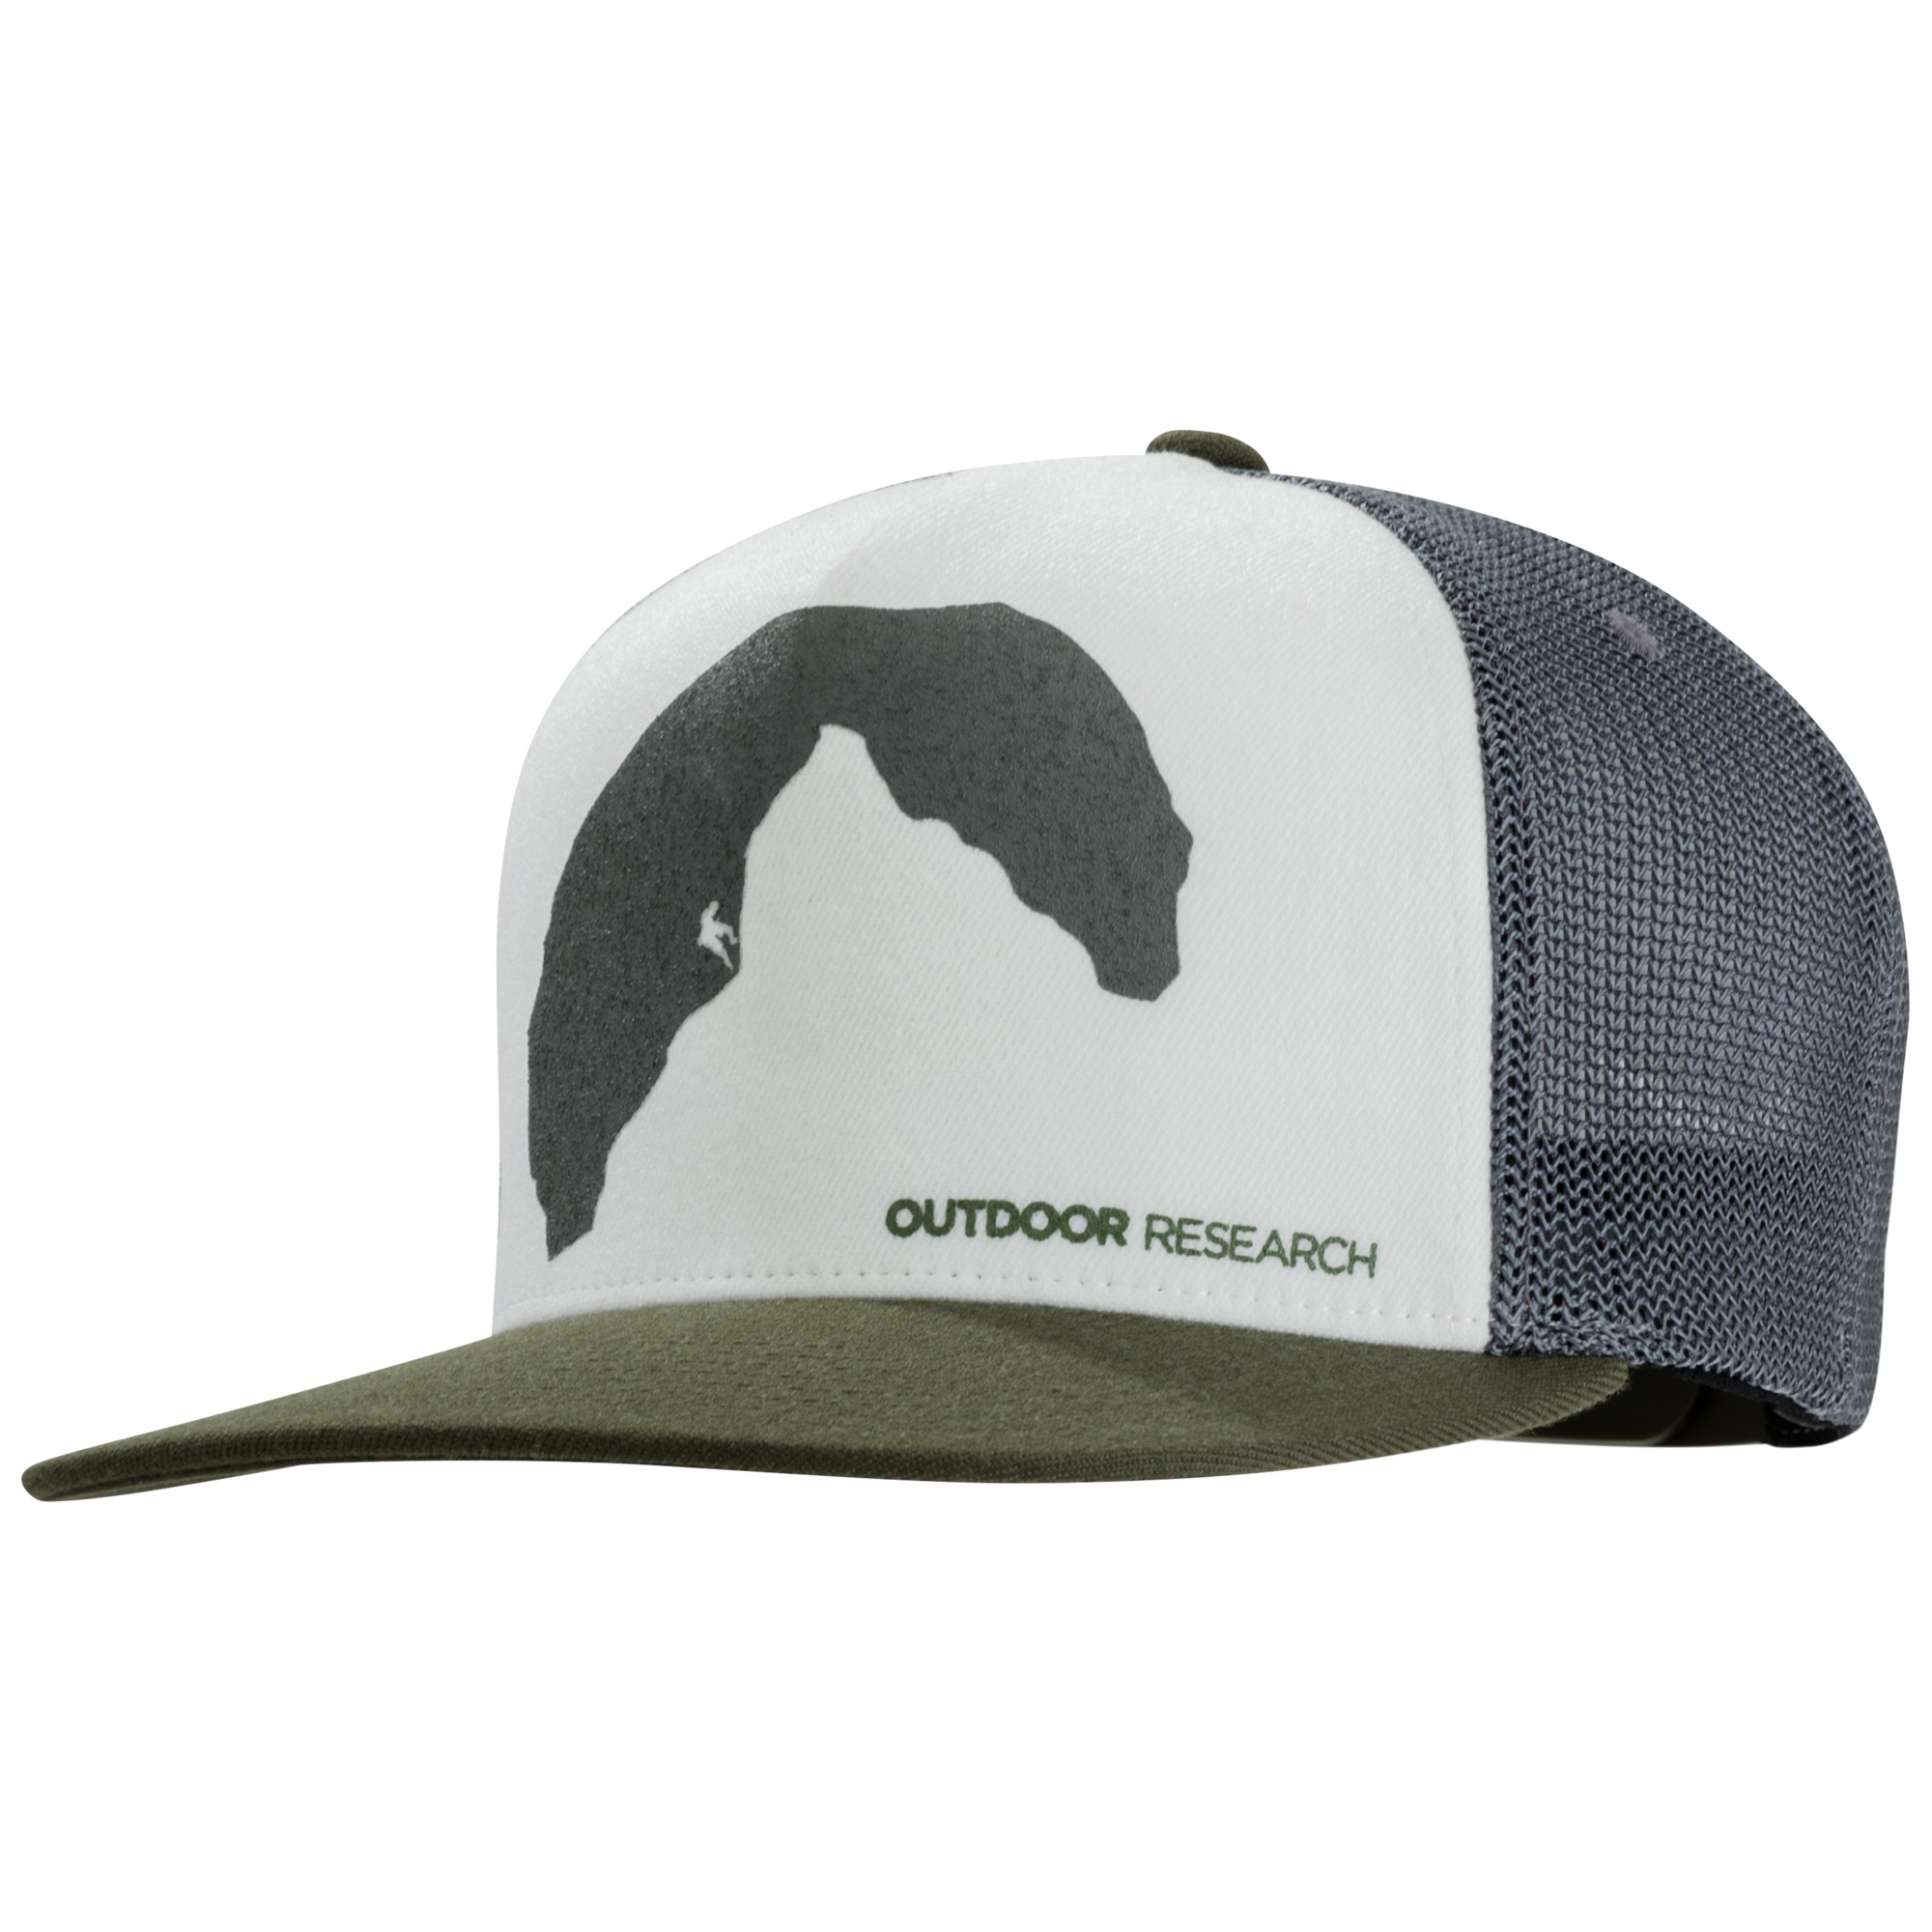 392c7821805 ... timeless design 65858 d6d42 OR Negative Space Trucker Cap fatigue   reputable site d15db a141d item 1 Outdoor Research ...